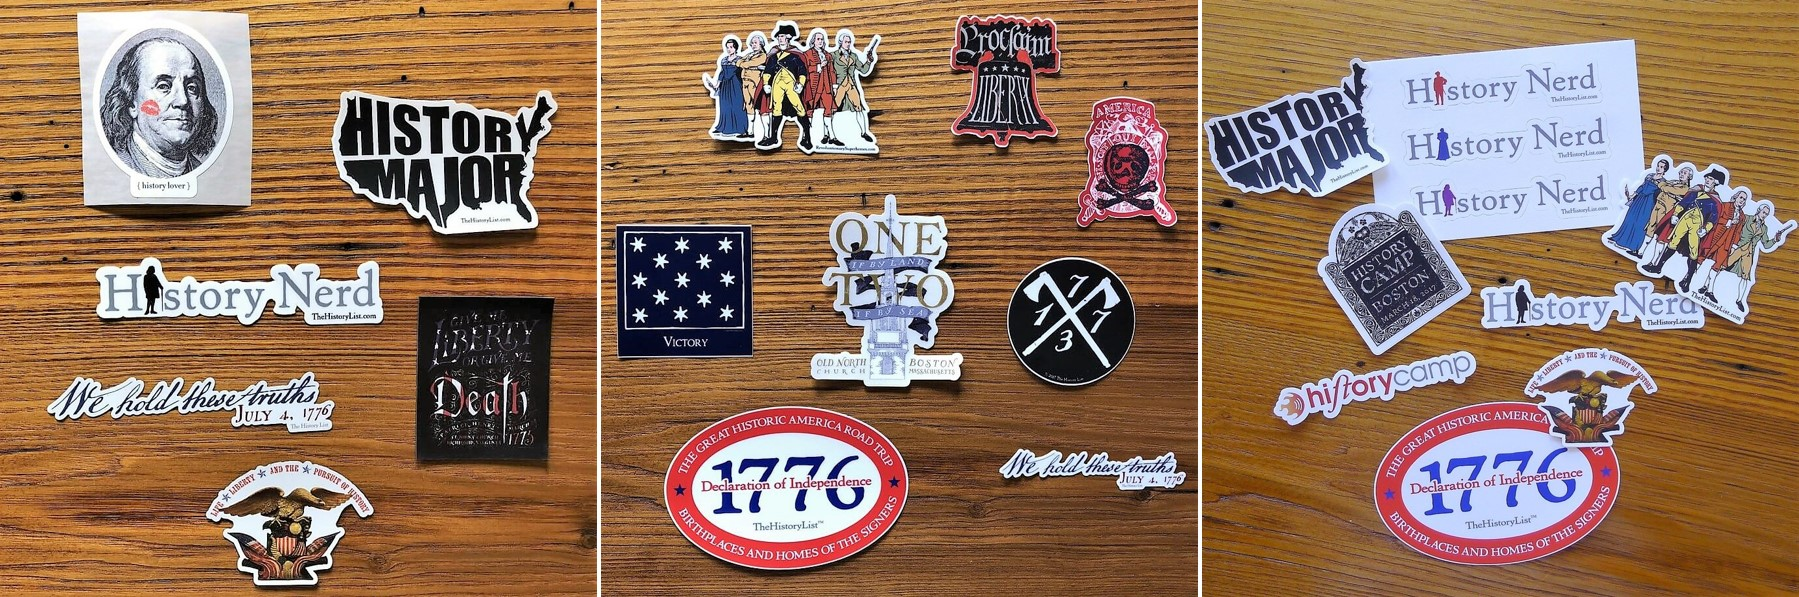 History nerd stickers and magnets